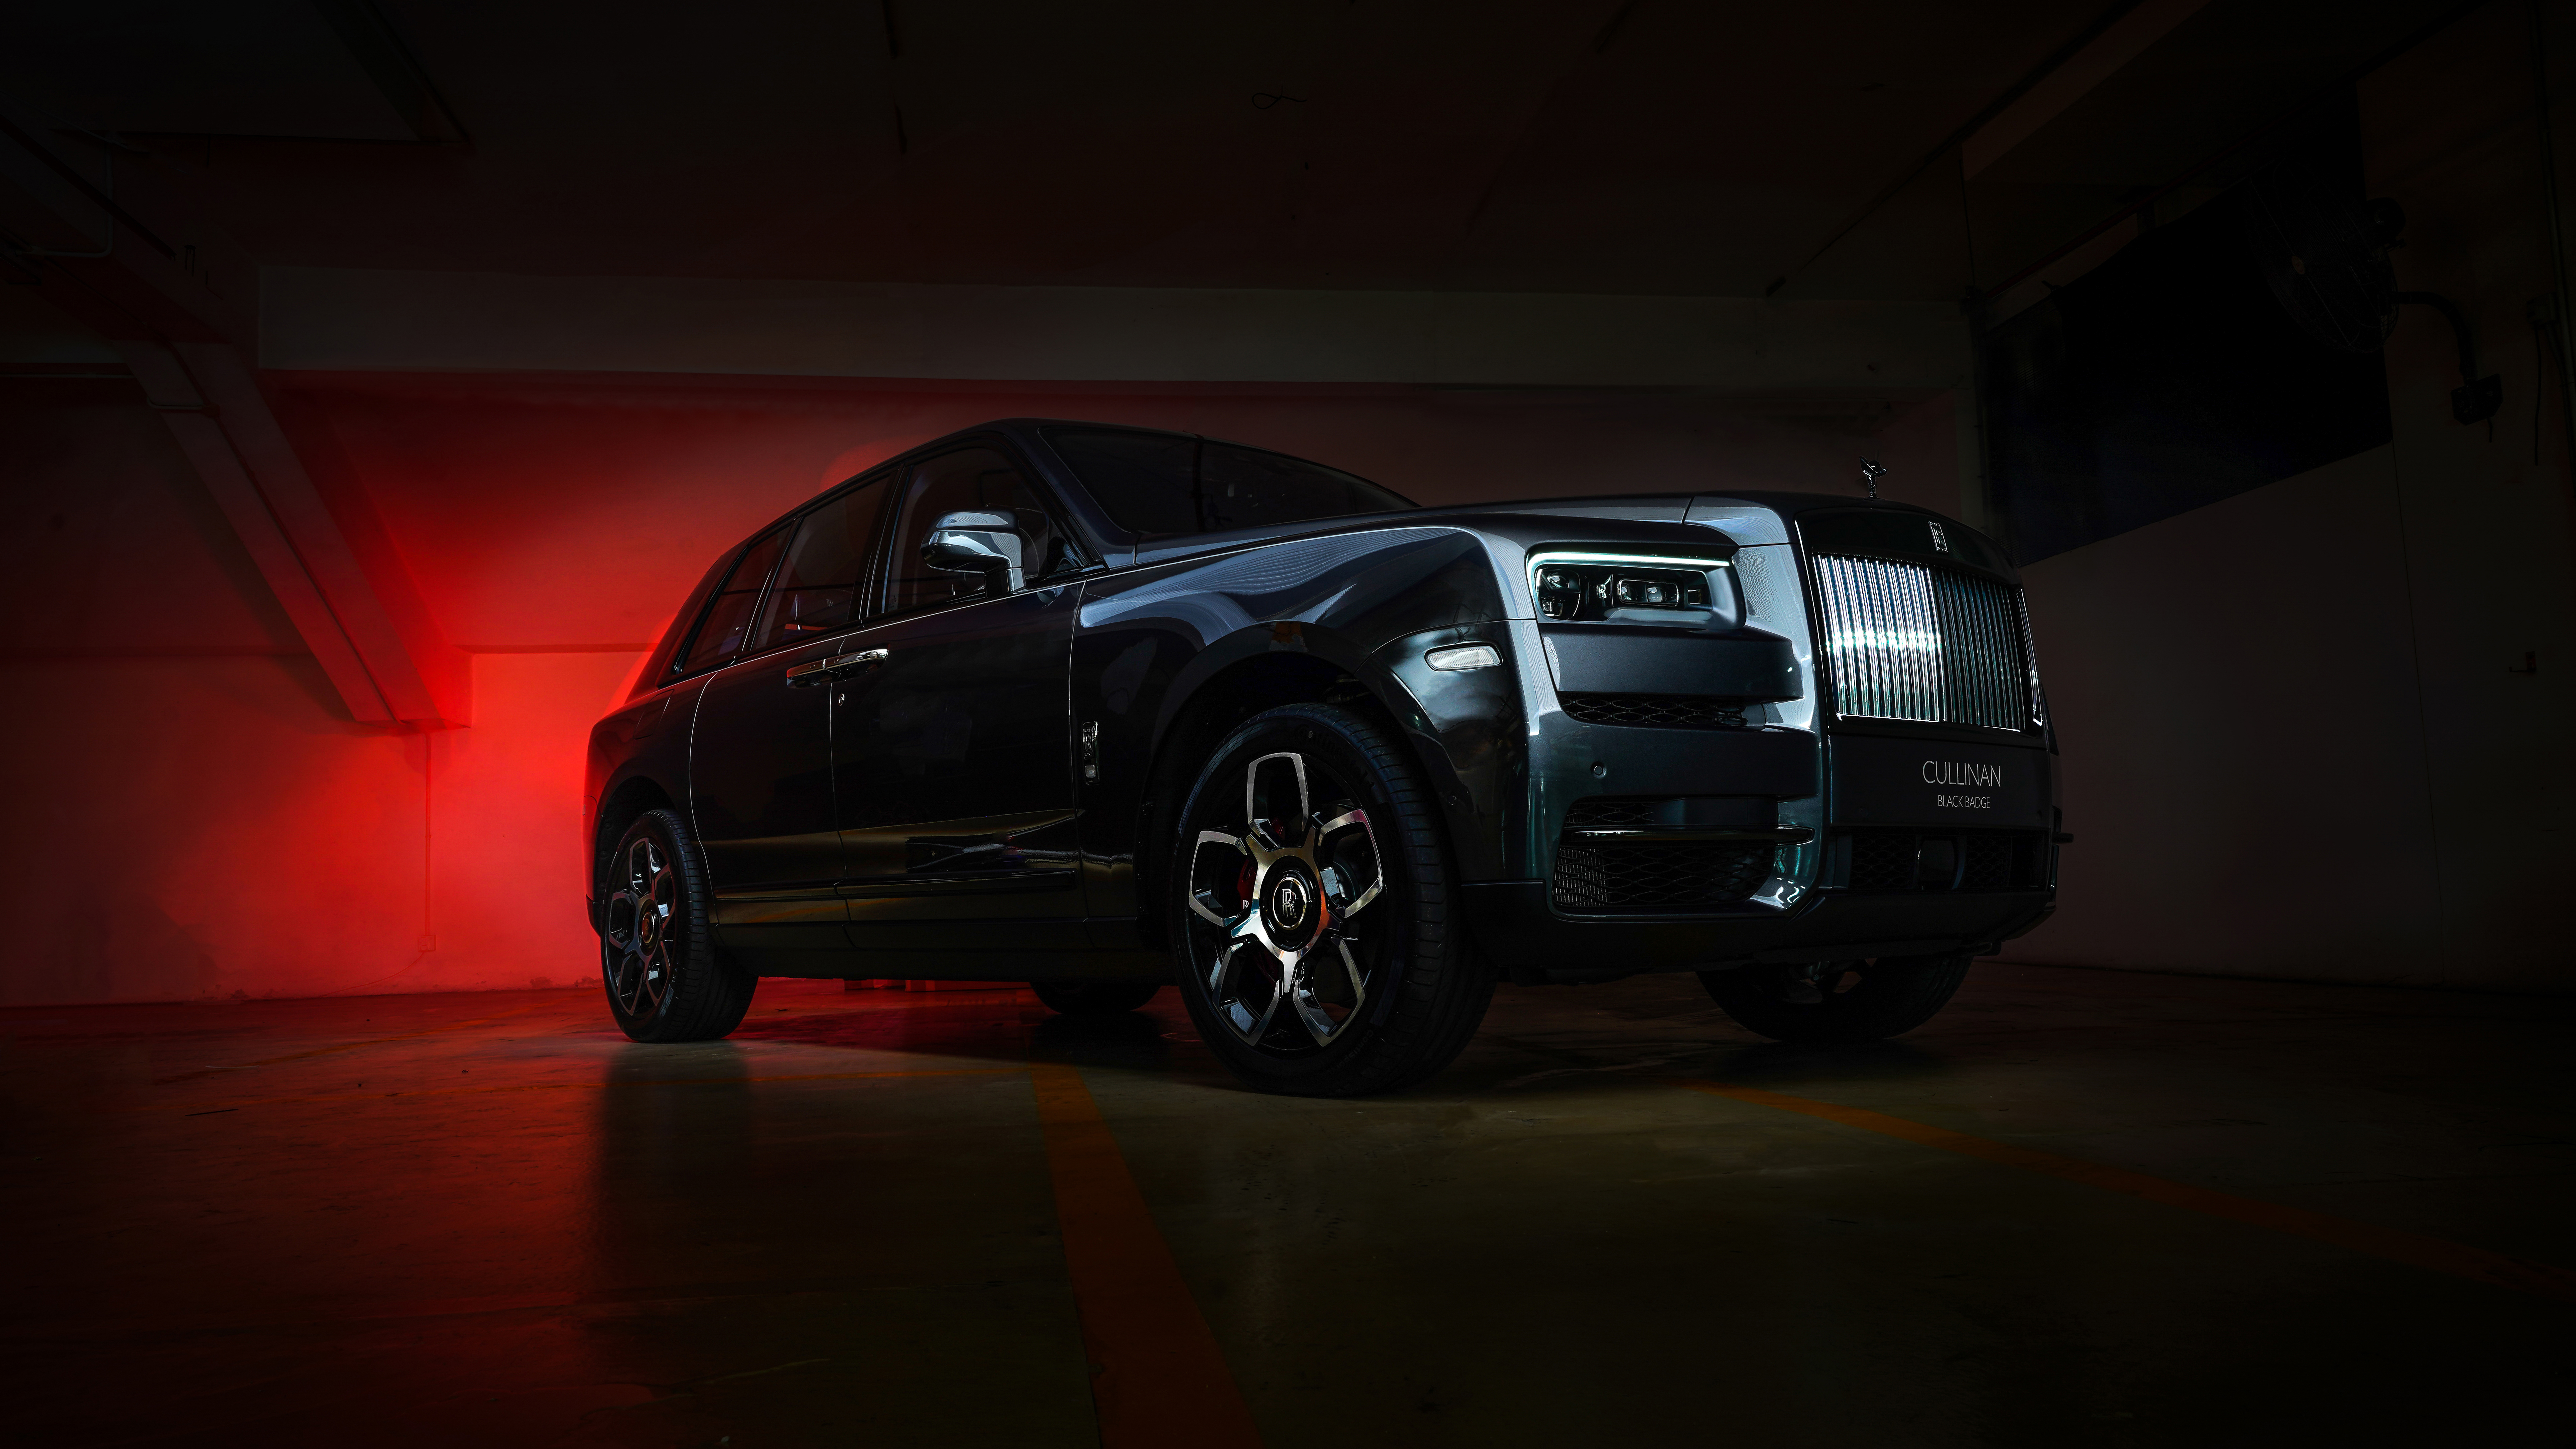 1366x768 Rolls Royce Cullinan Black Badge 2020 1366x768 Resolution Hd 4k Wallpapers Images Backgrounds Photos And Pictures